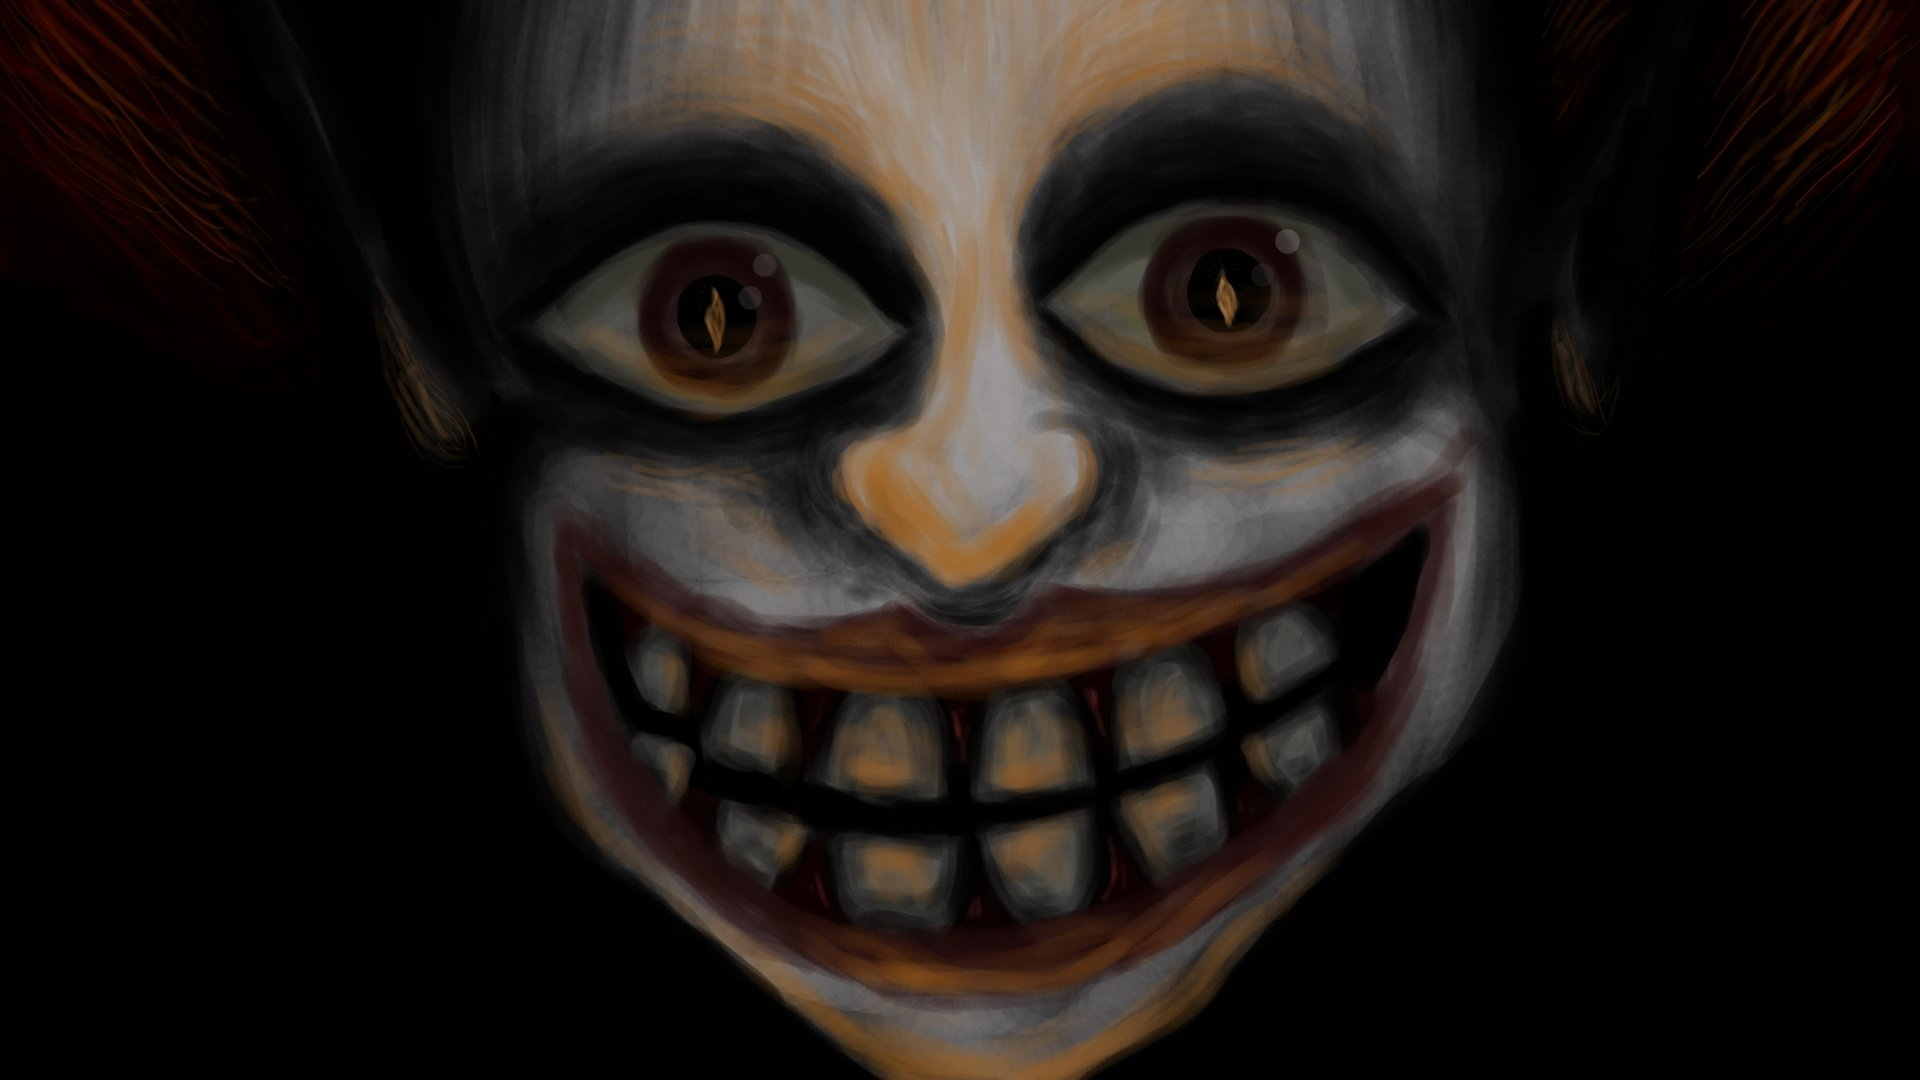 Dark - Creepy  Jeff the Killer Wallpaper